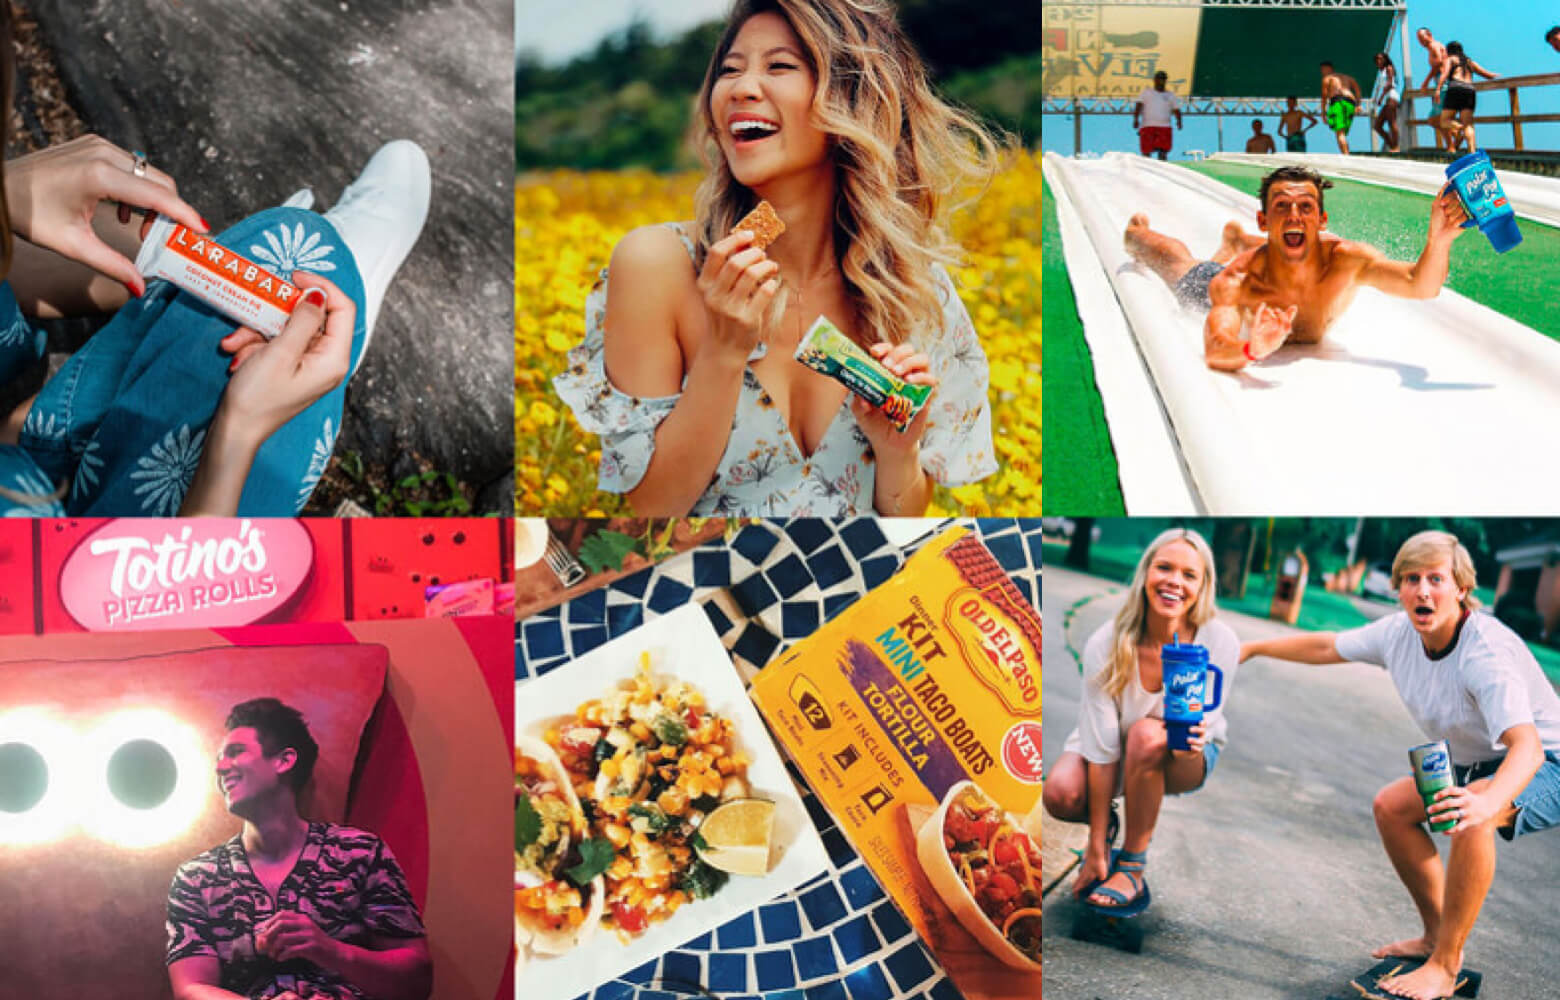 Six panel photo montage of typical social influencer content.